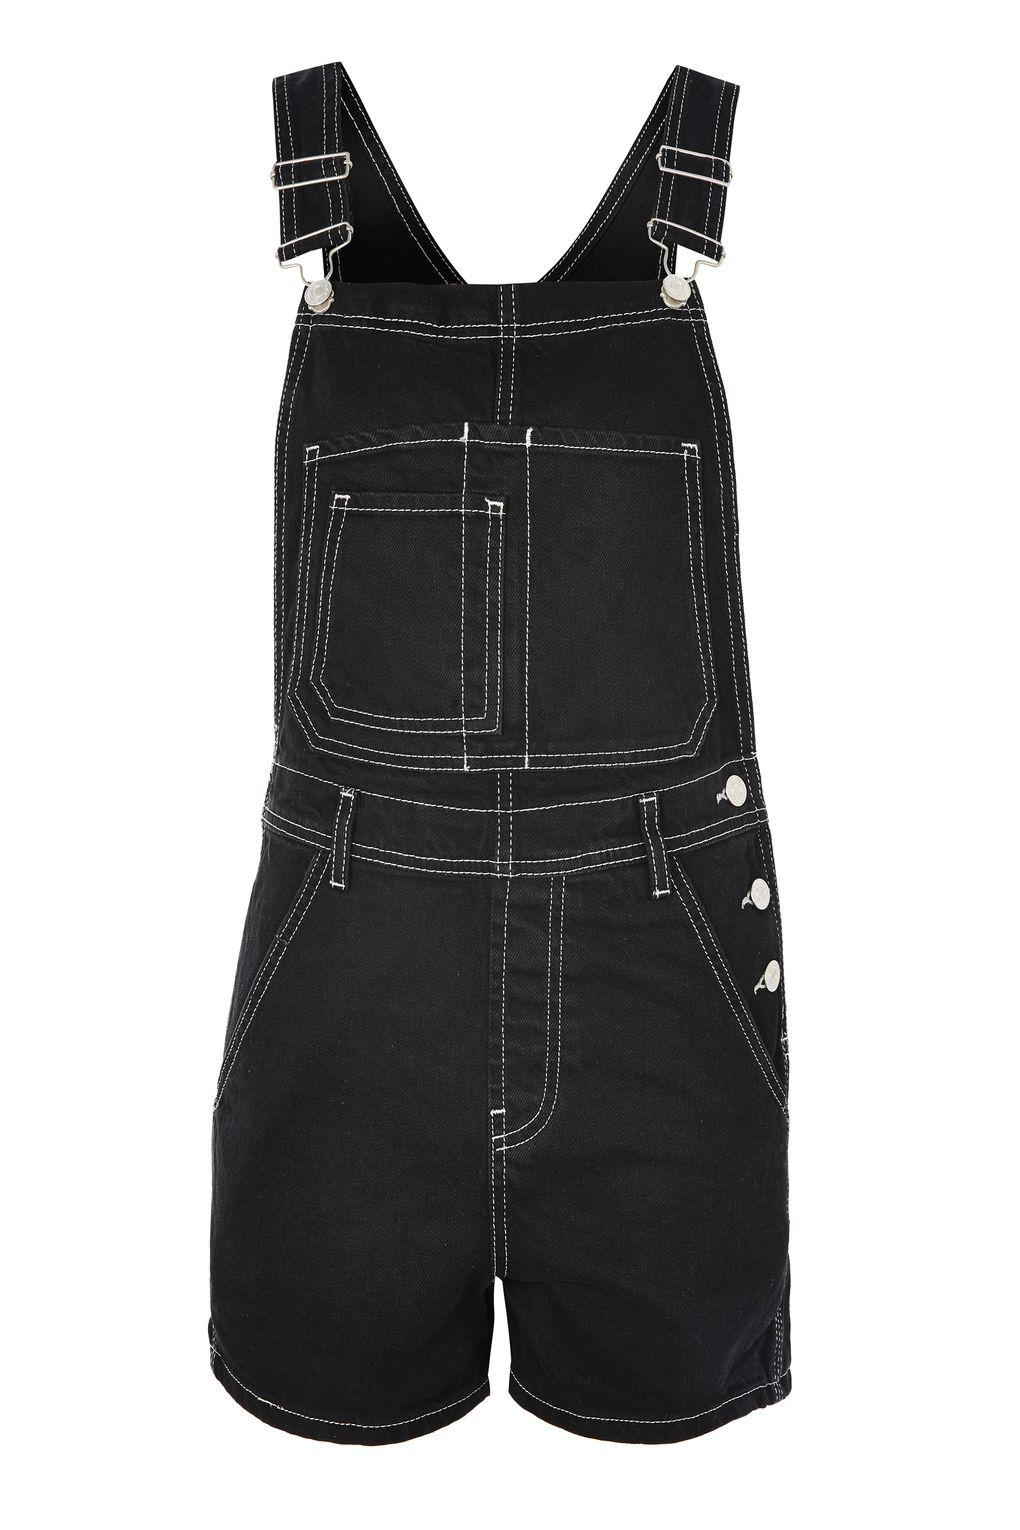 Topshop moto contrast stitch short dungarees in black lyst for Womens denim shirts topshop